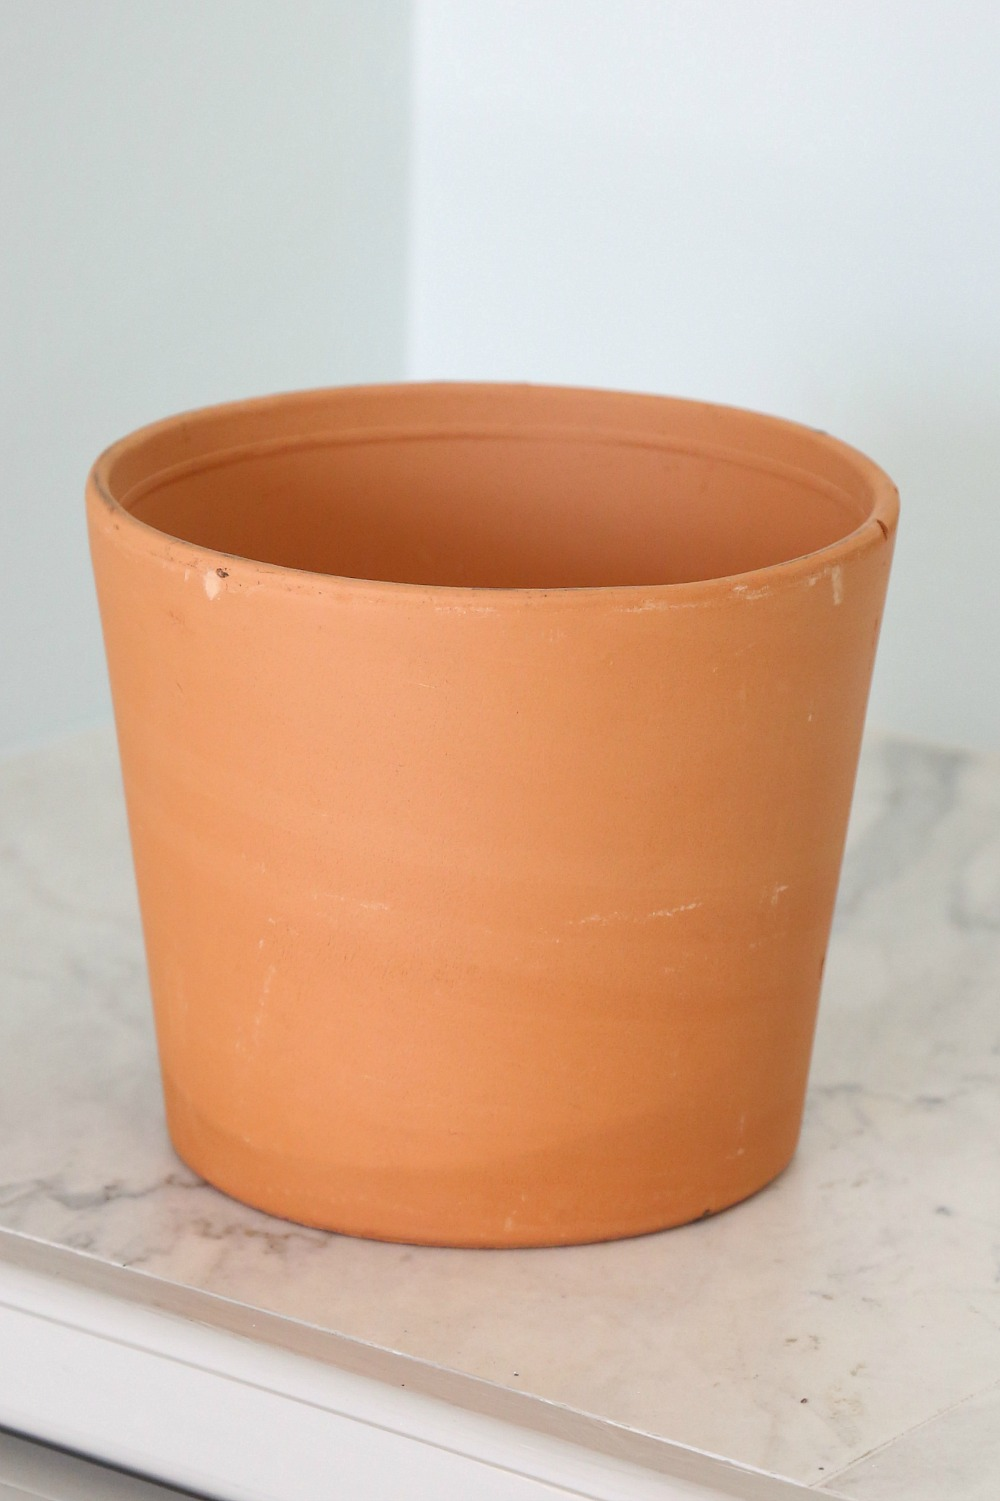 Teracotta pot before being spray painted with Testors CreateFX Spray Paint